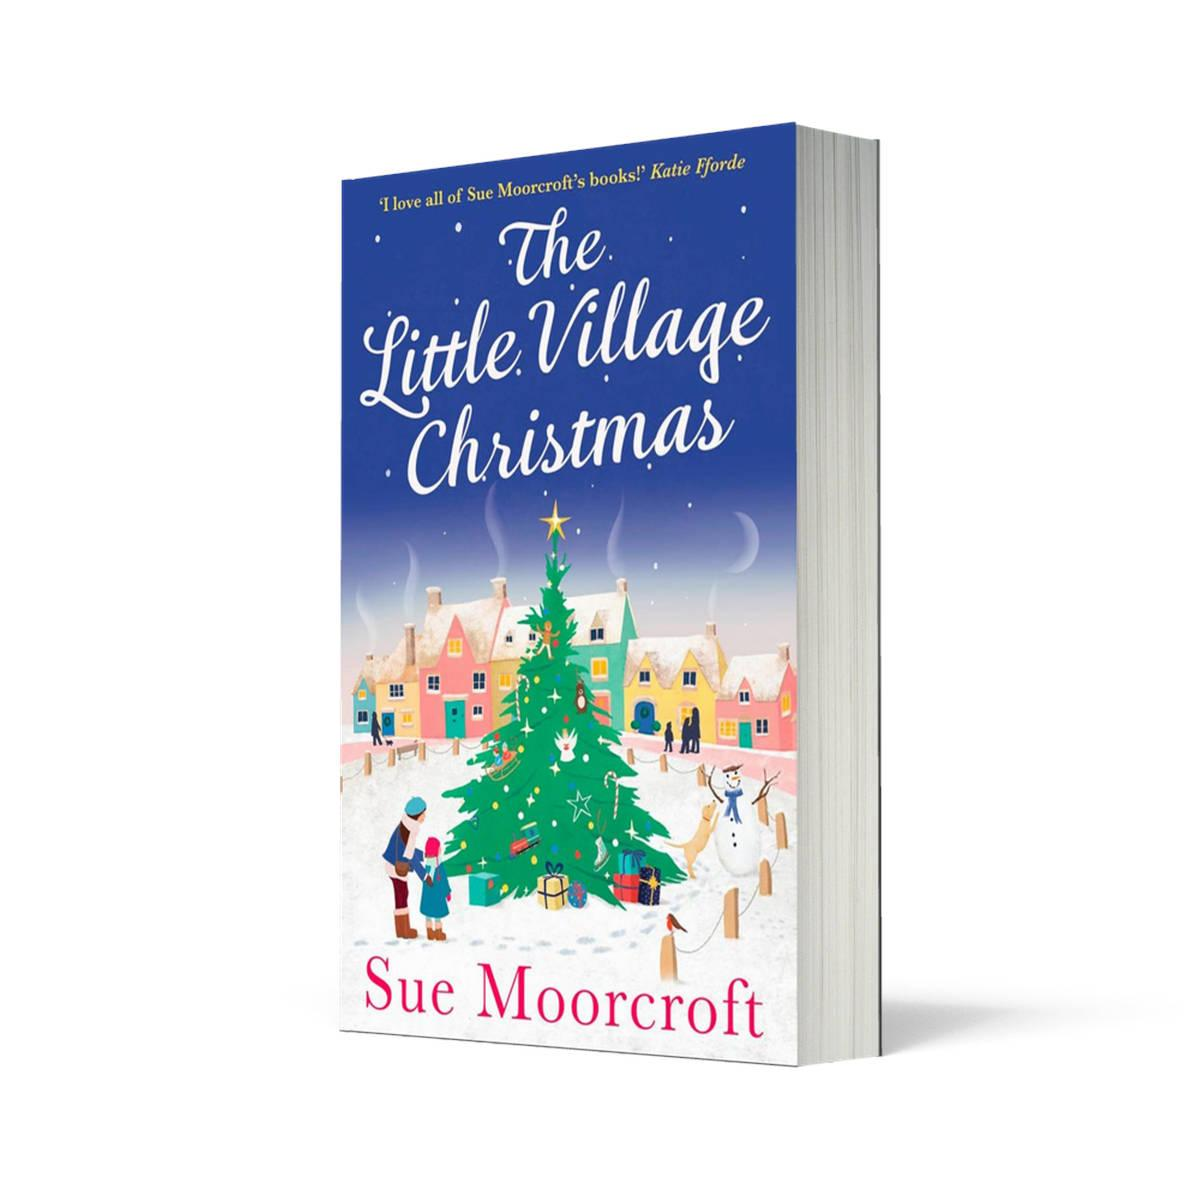 Image of The Little Village Christmas